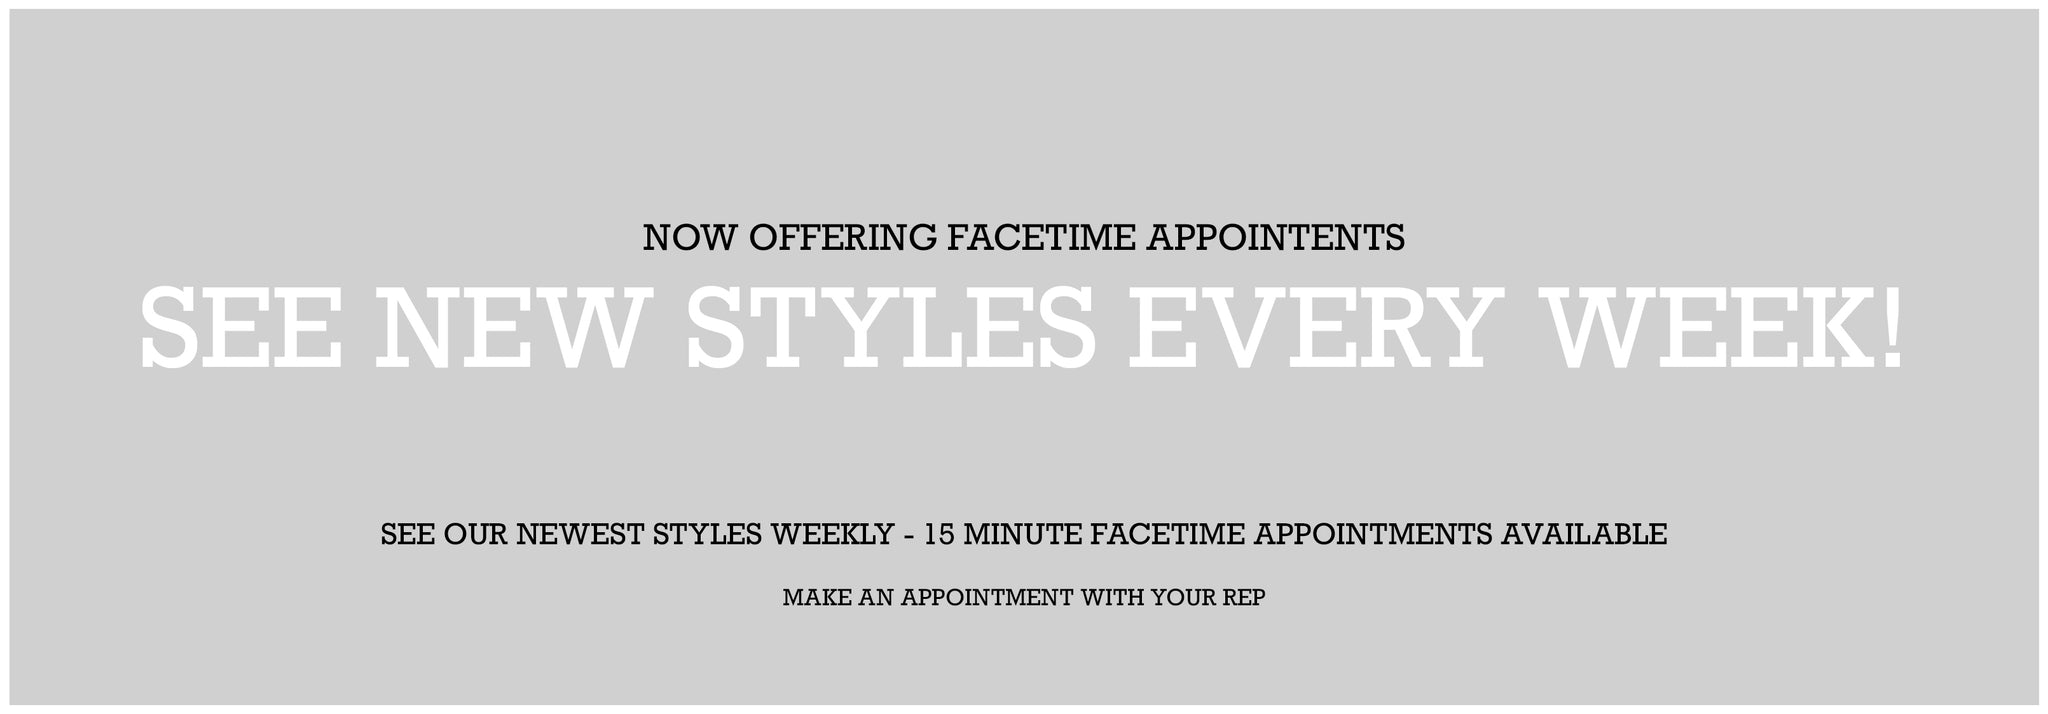 facetime_appointments